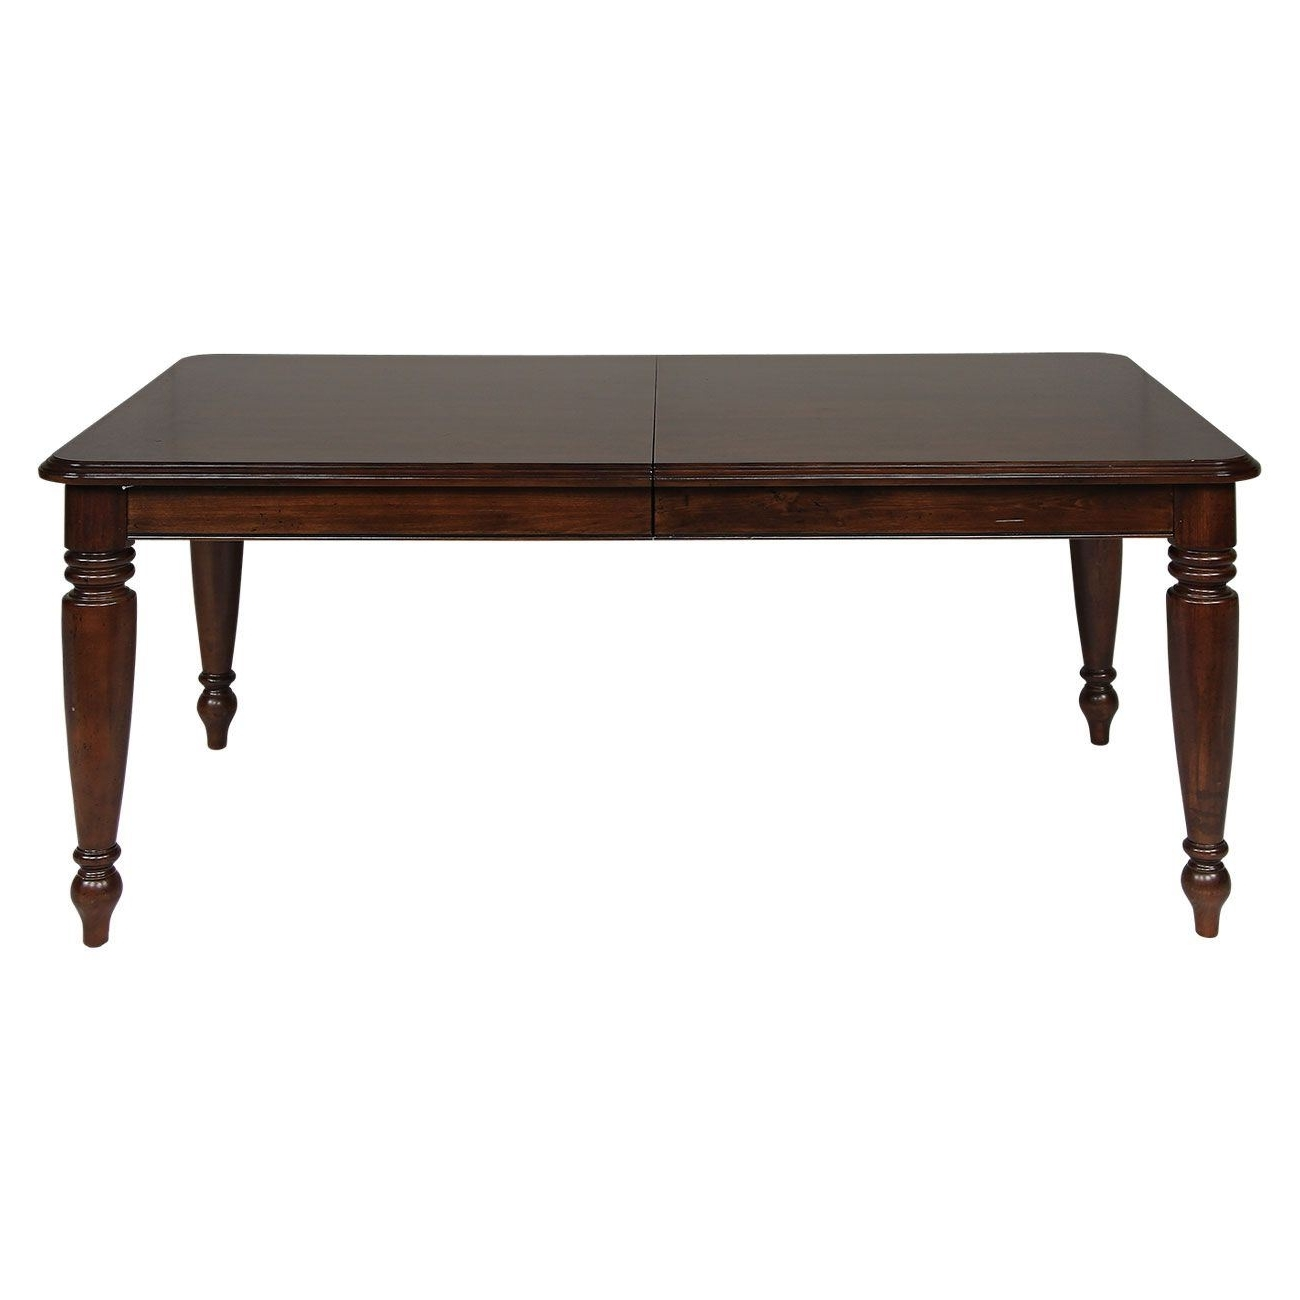 Cotswold Rectangular Dining Table With Most Popular Cotswold Dining Tables (View 14 of 25)